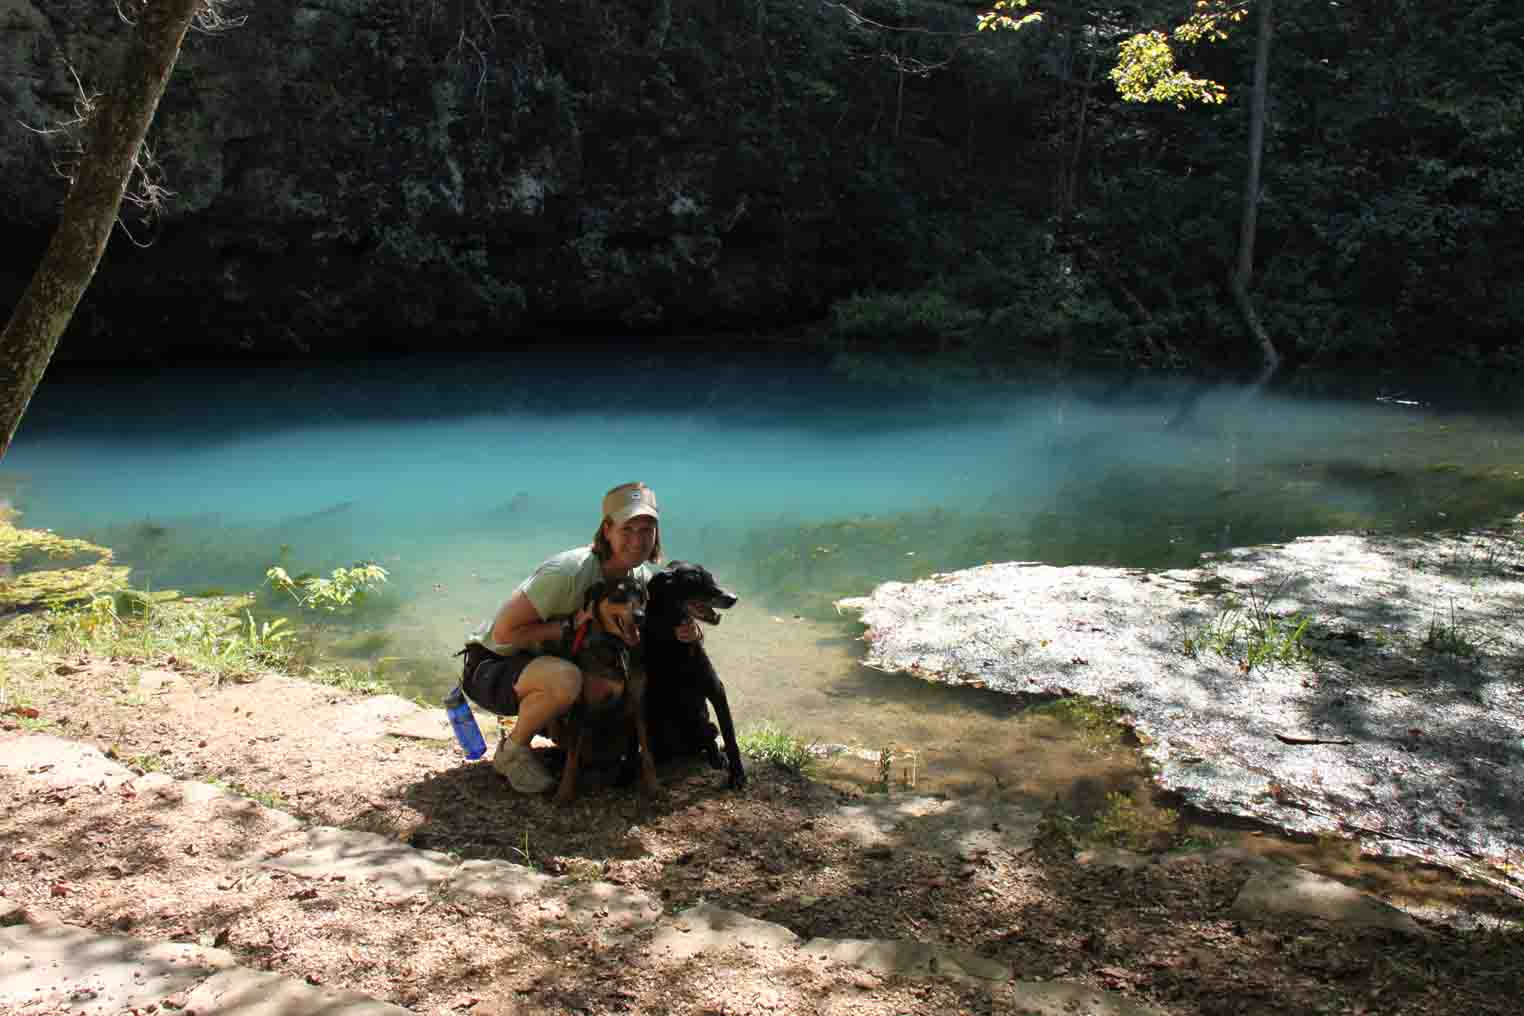 me and my dogs at blue spring in the missouri ozarks